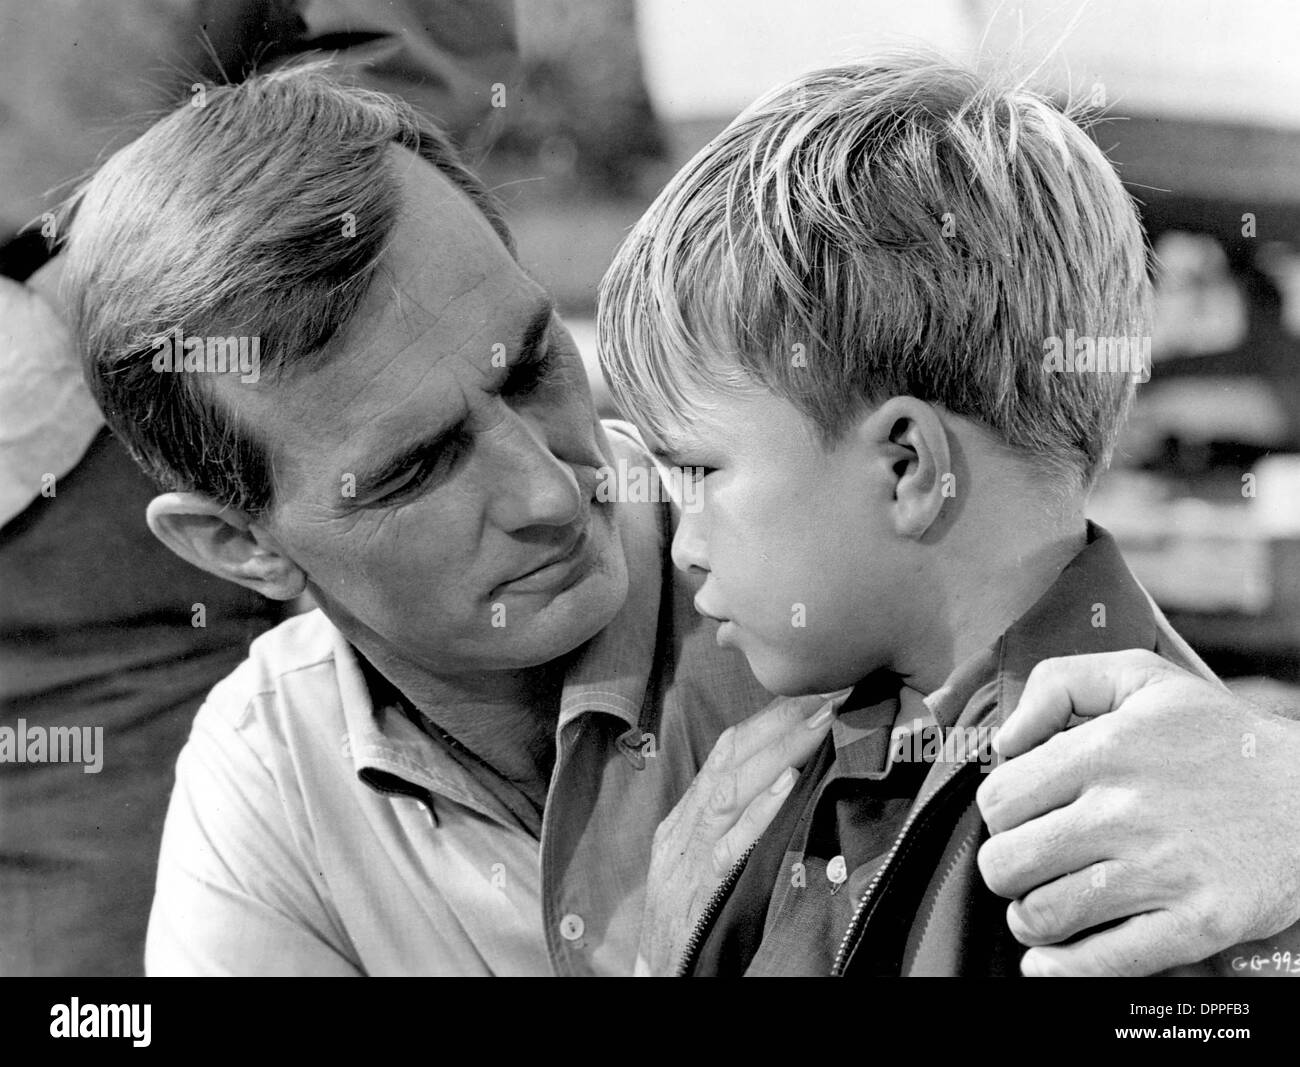 Feb. 27, 2006 - ''GENTLE BEN''.DENNIS WEAVER WITH CLINT HOWARD.SUPPLIED BY    TV-FILM STILL(Credit Image: © Globe Photos/ZUMAPRESS.com) - Stock Image